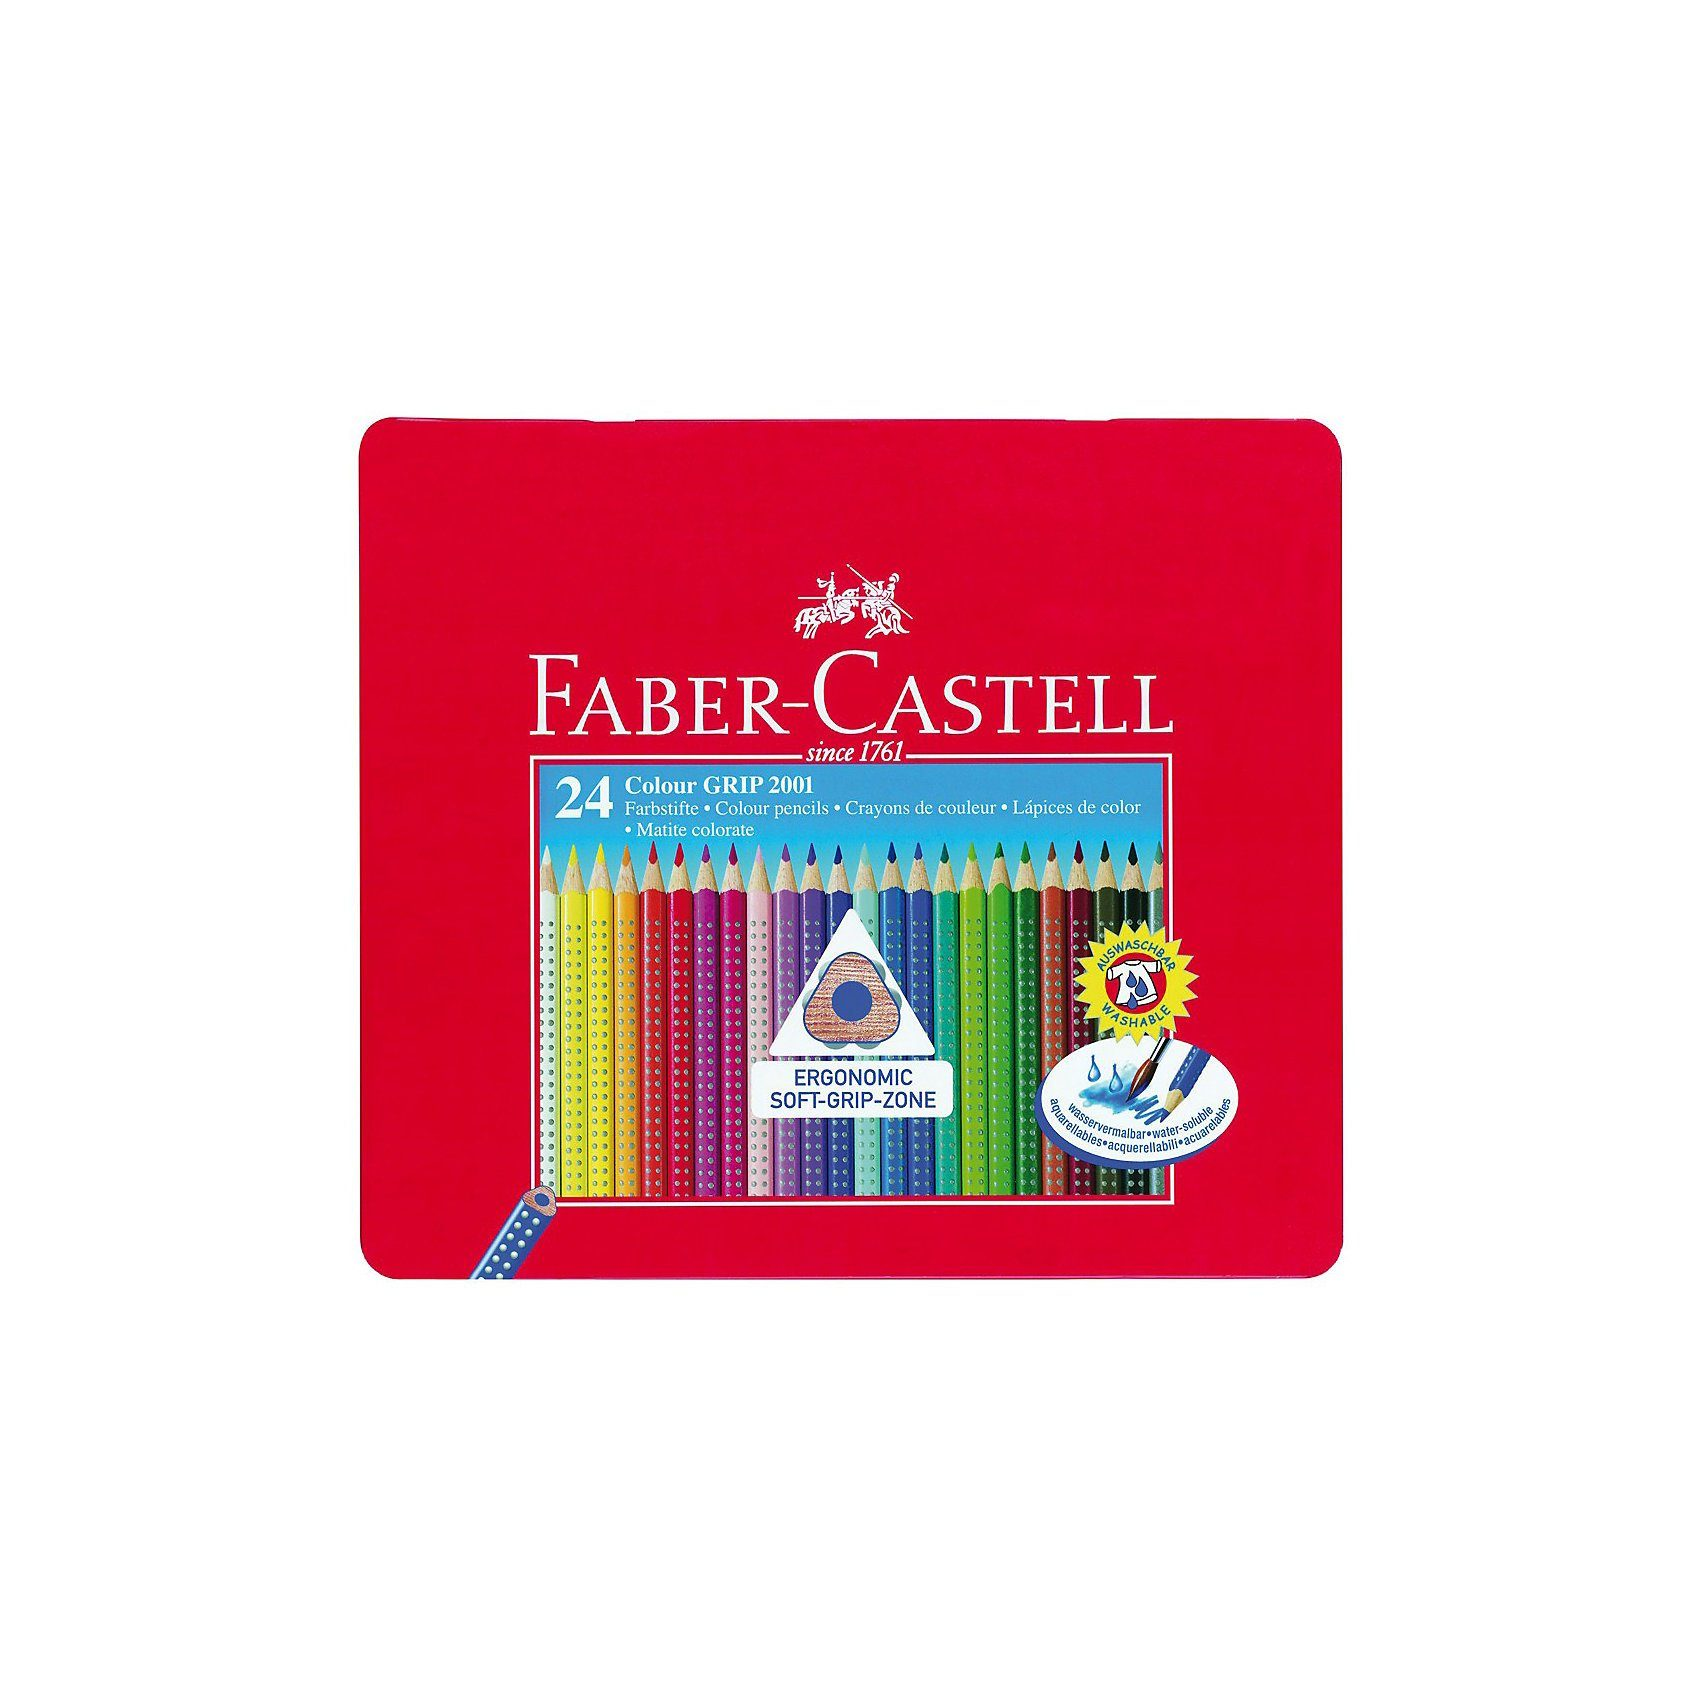 Faber-Castell COLOUR GRIP Buntstifte wasservermalbar, 24 Farben, Metalletu